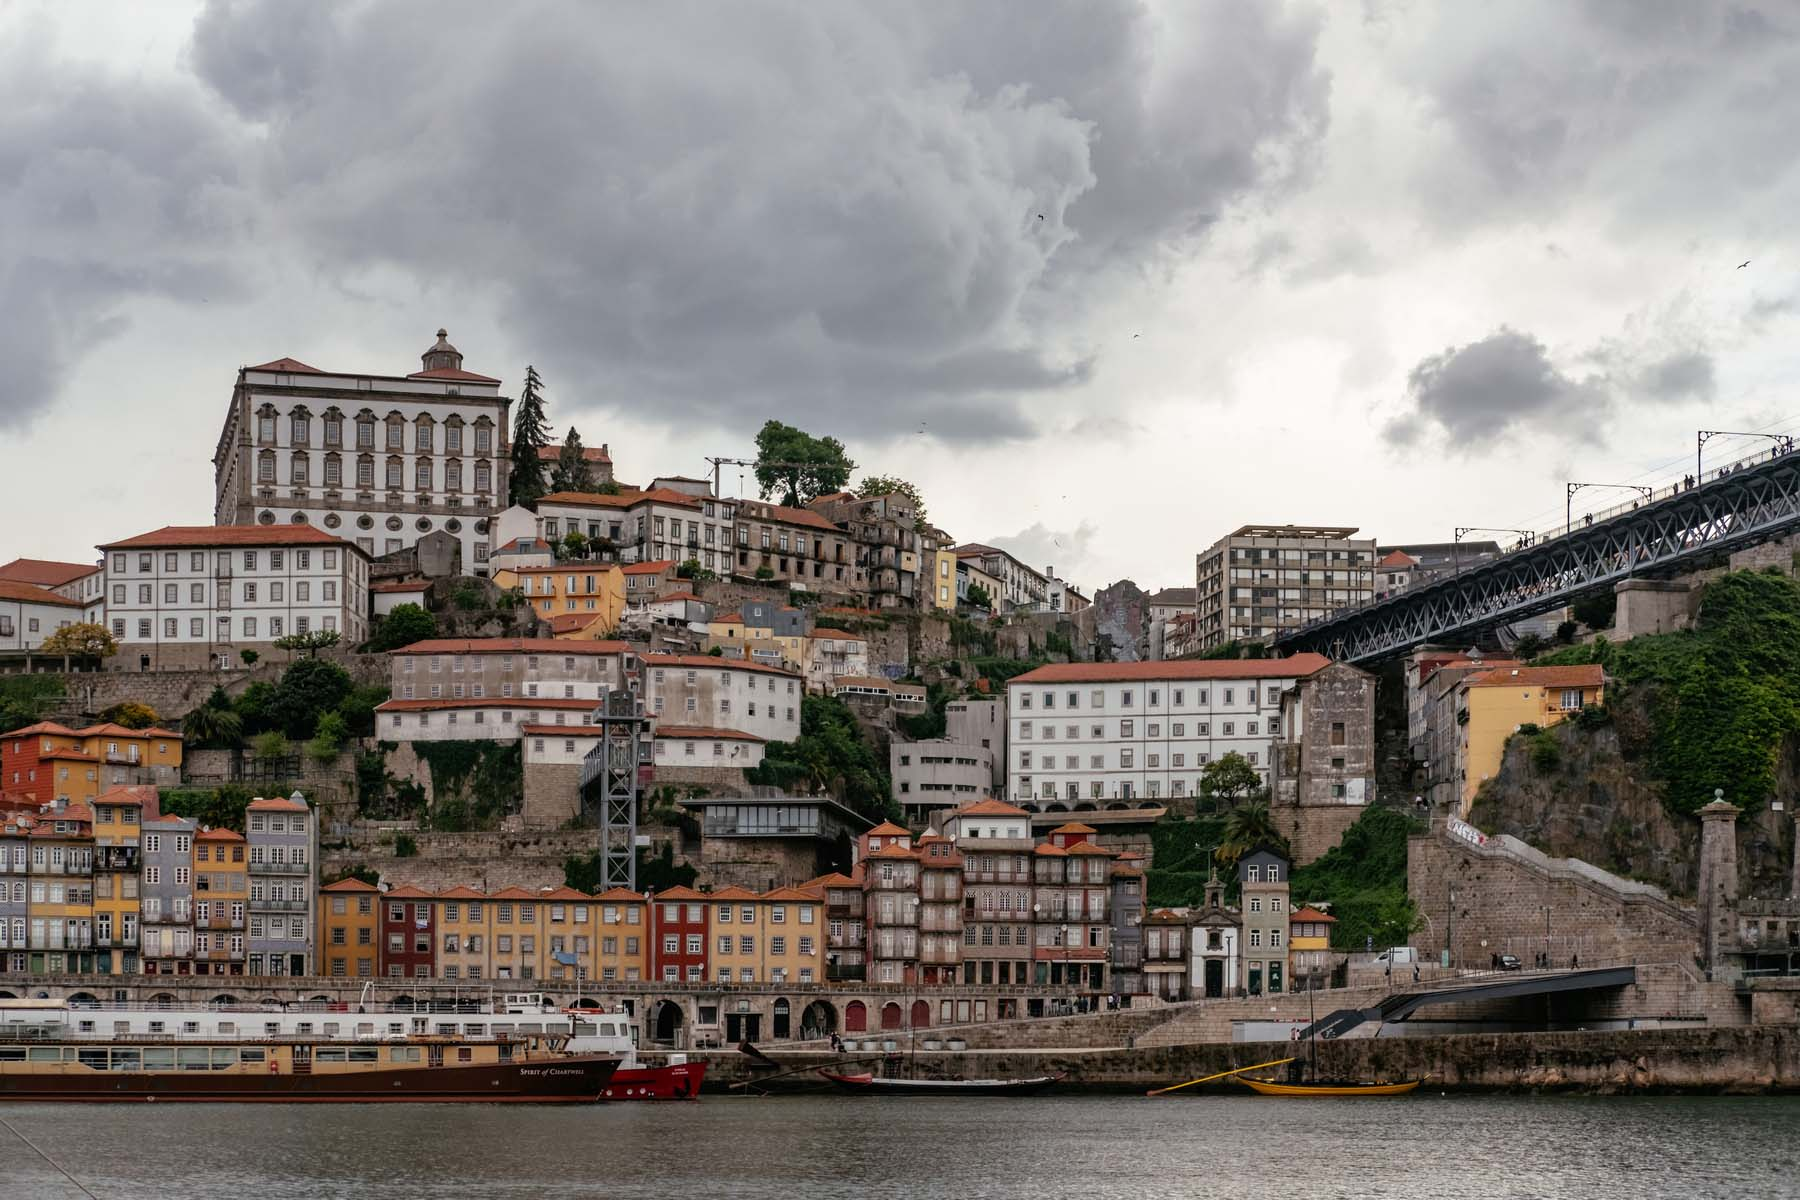 Any Porto in a storm